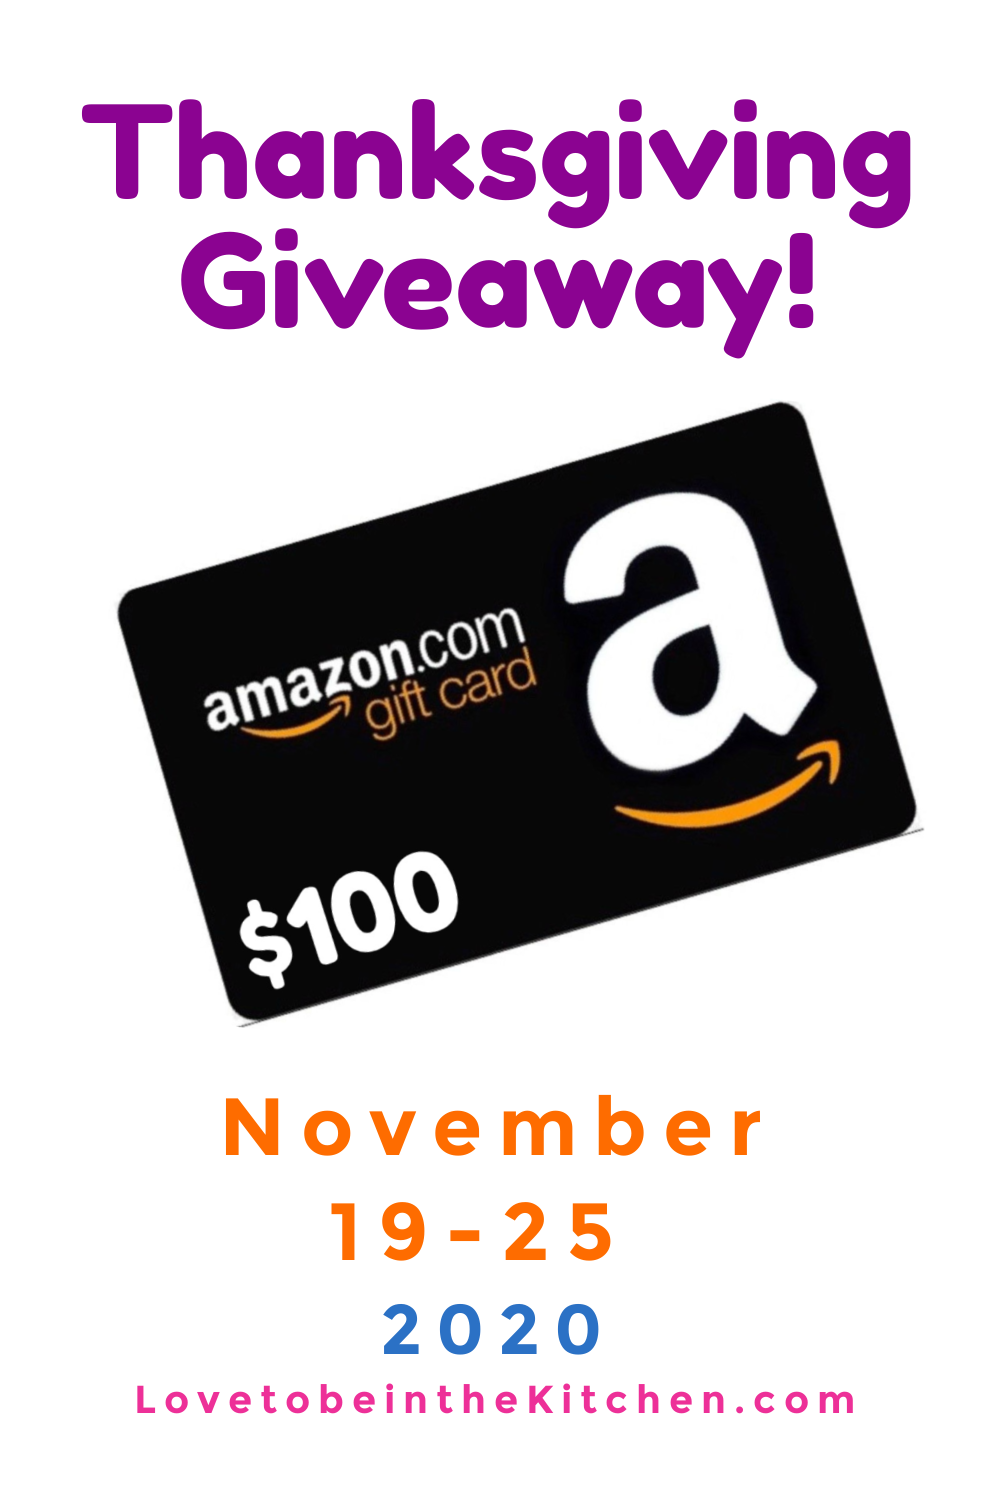 $100 Amazon Gift Card Giveaway from LovetobeintheKitchen.com